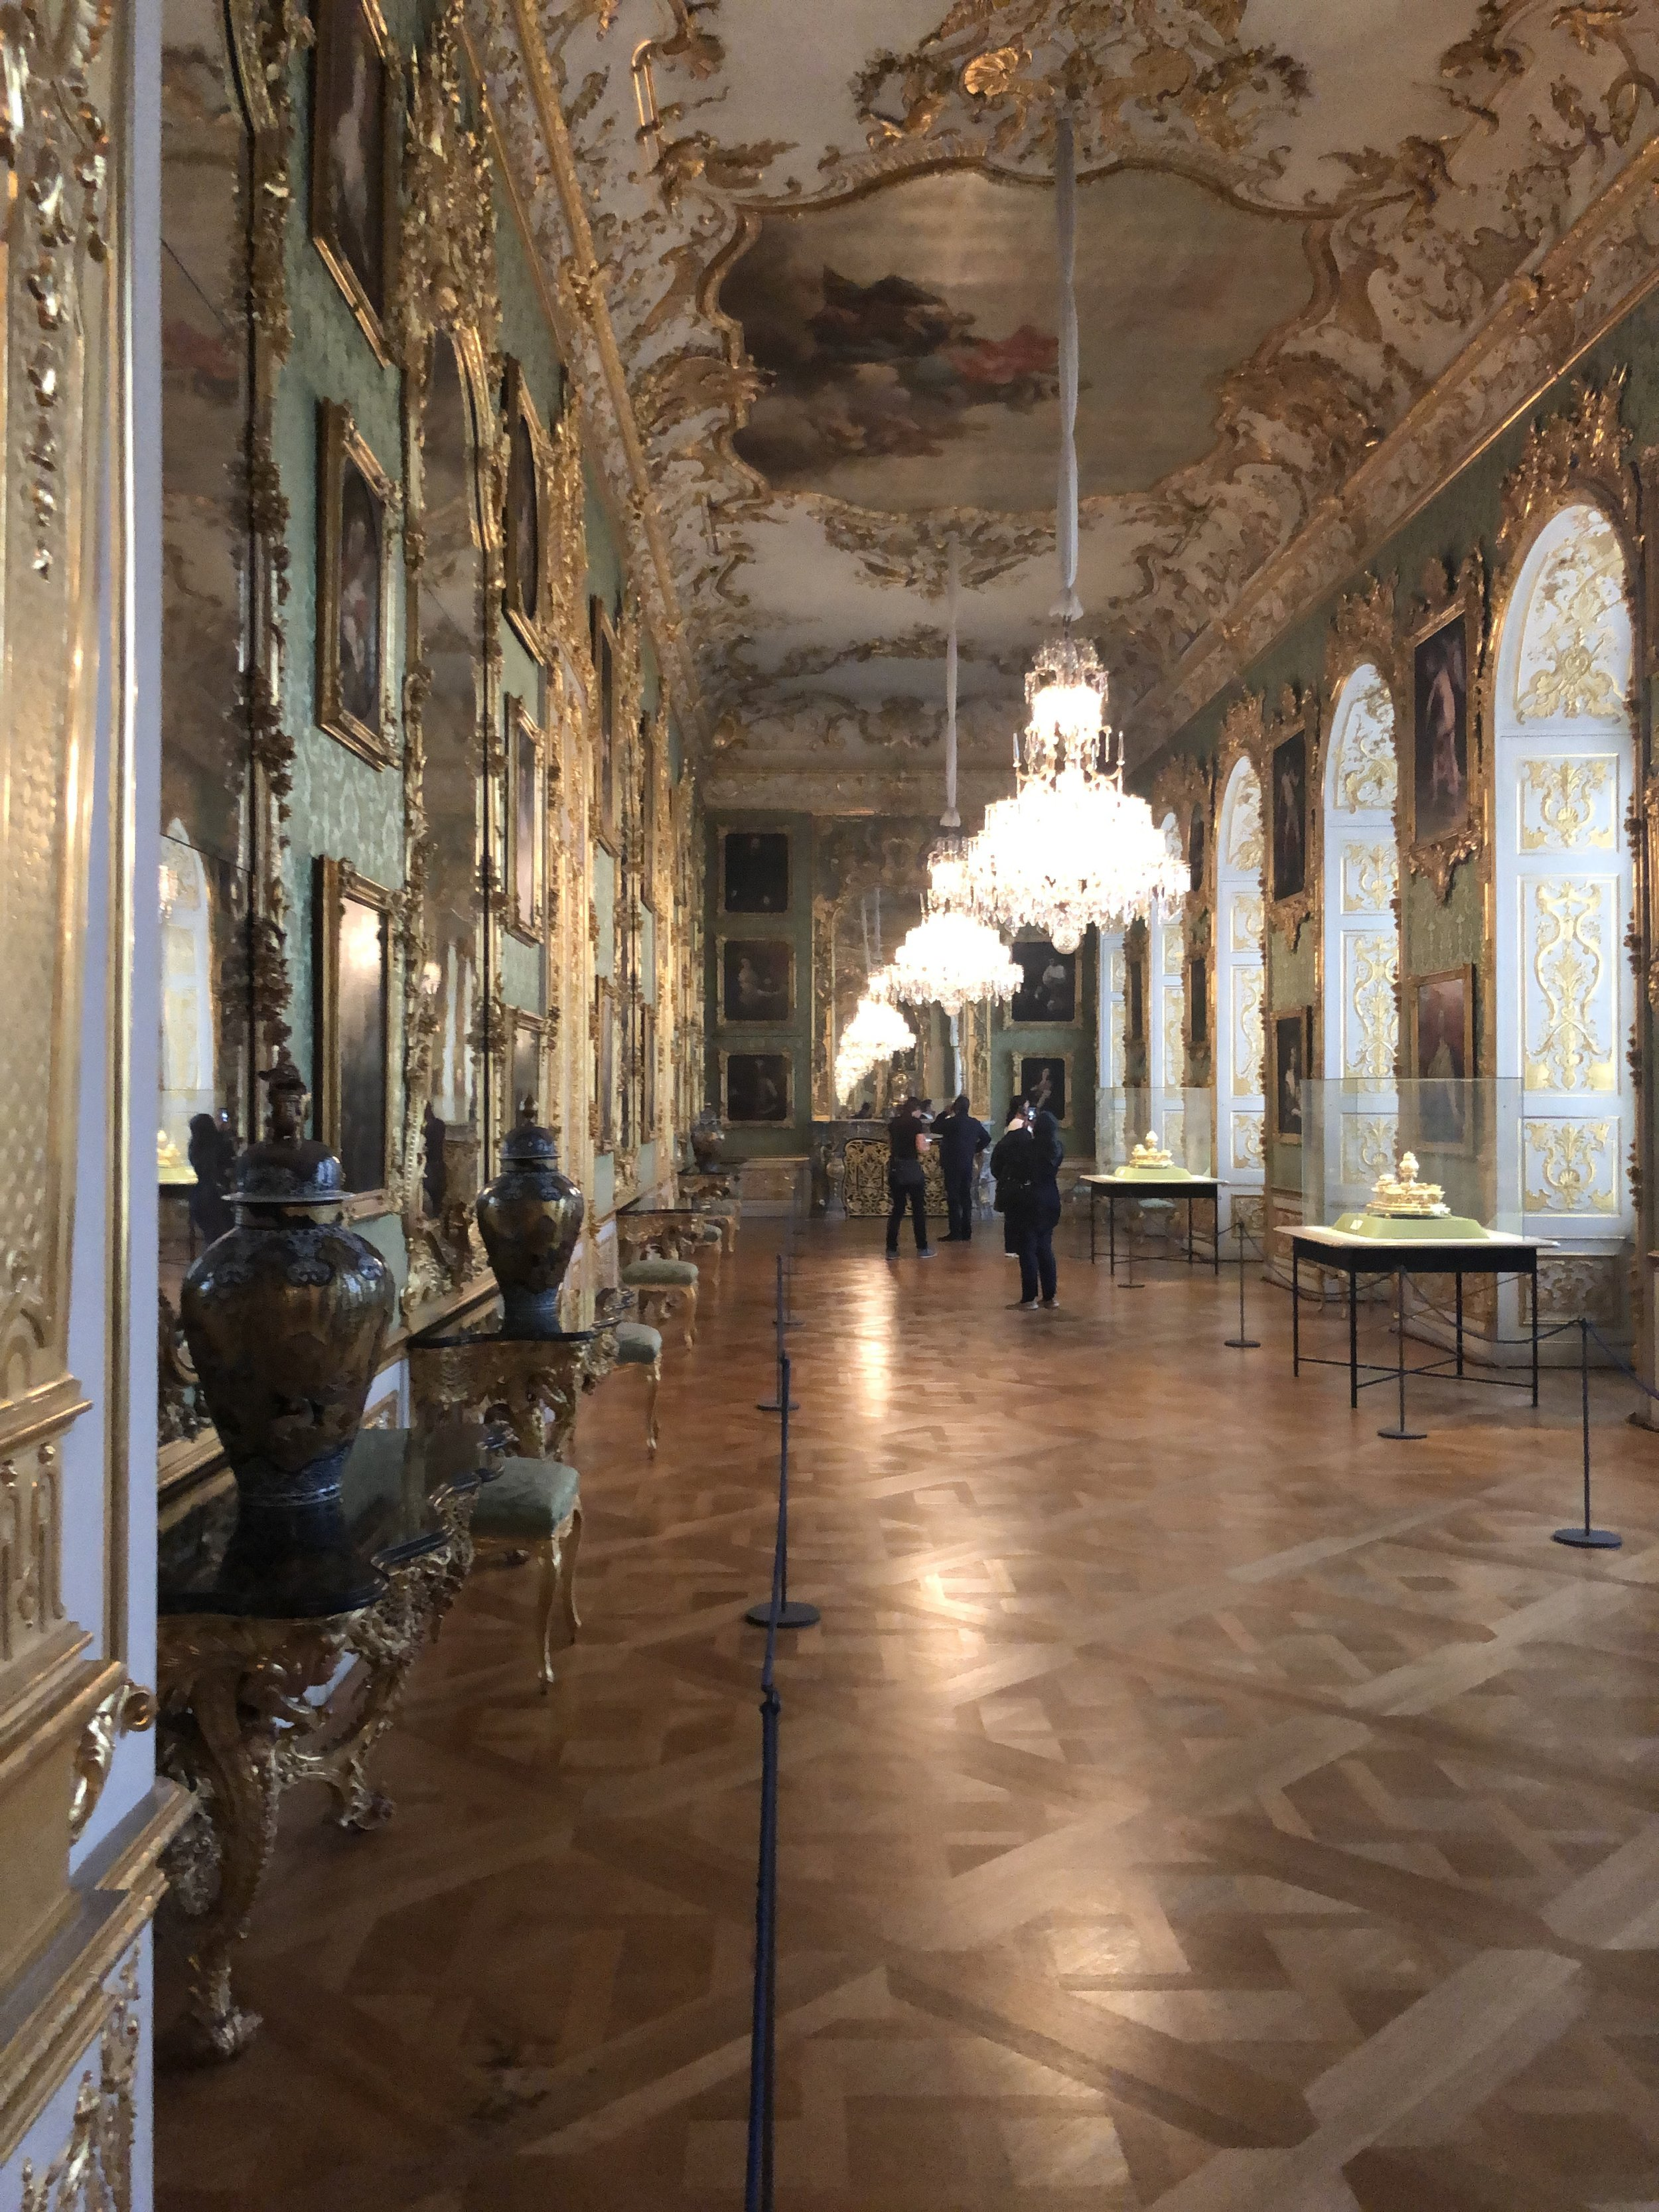 One of the many halls which were originally the home to the royal family.